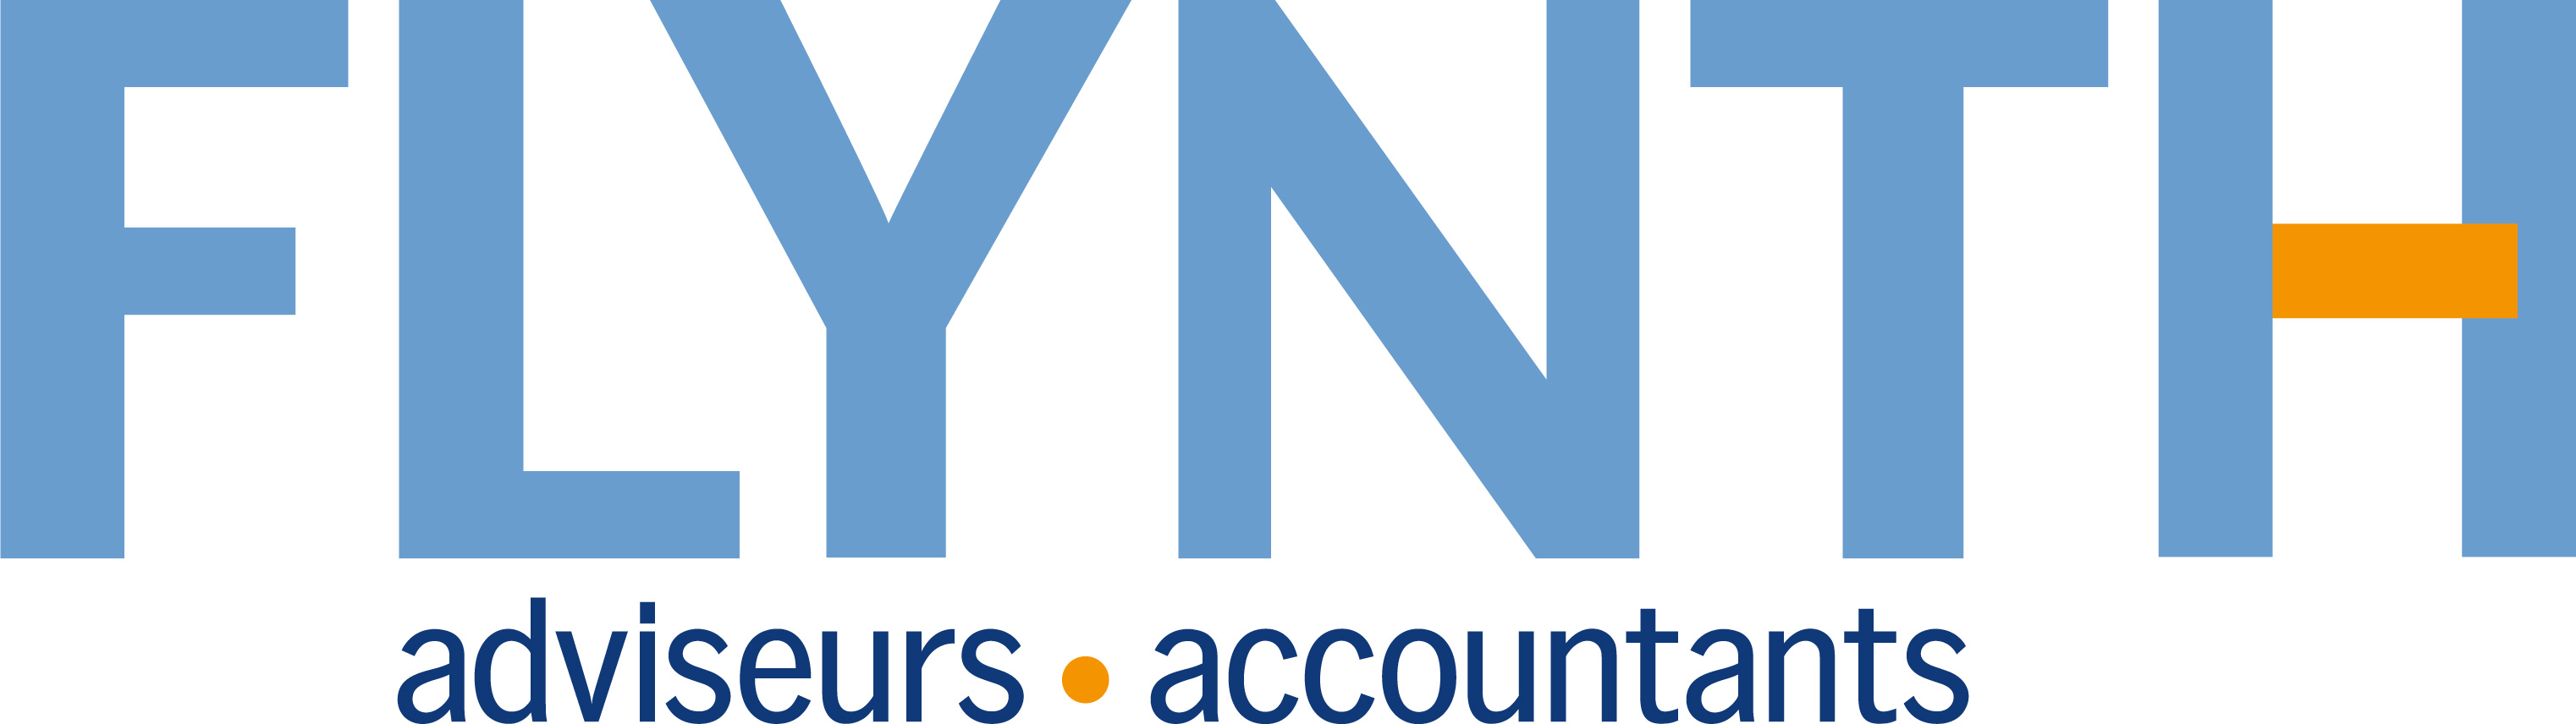 FLYNTH adviseurs en accountants